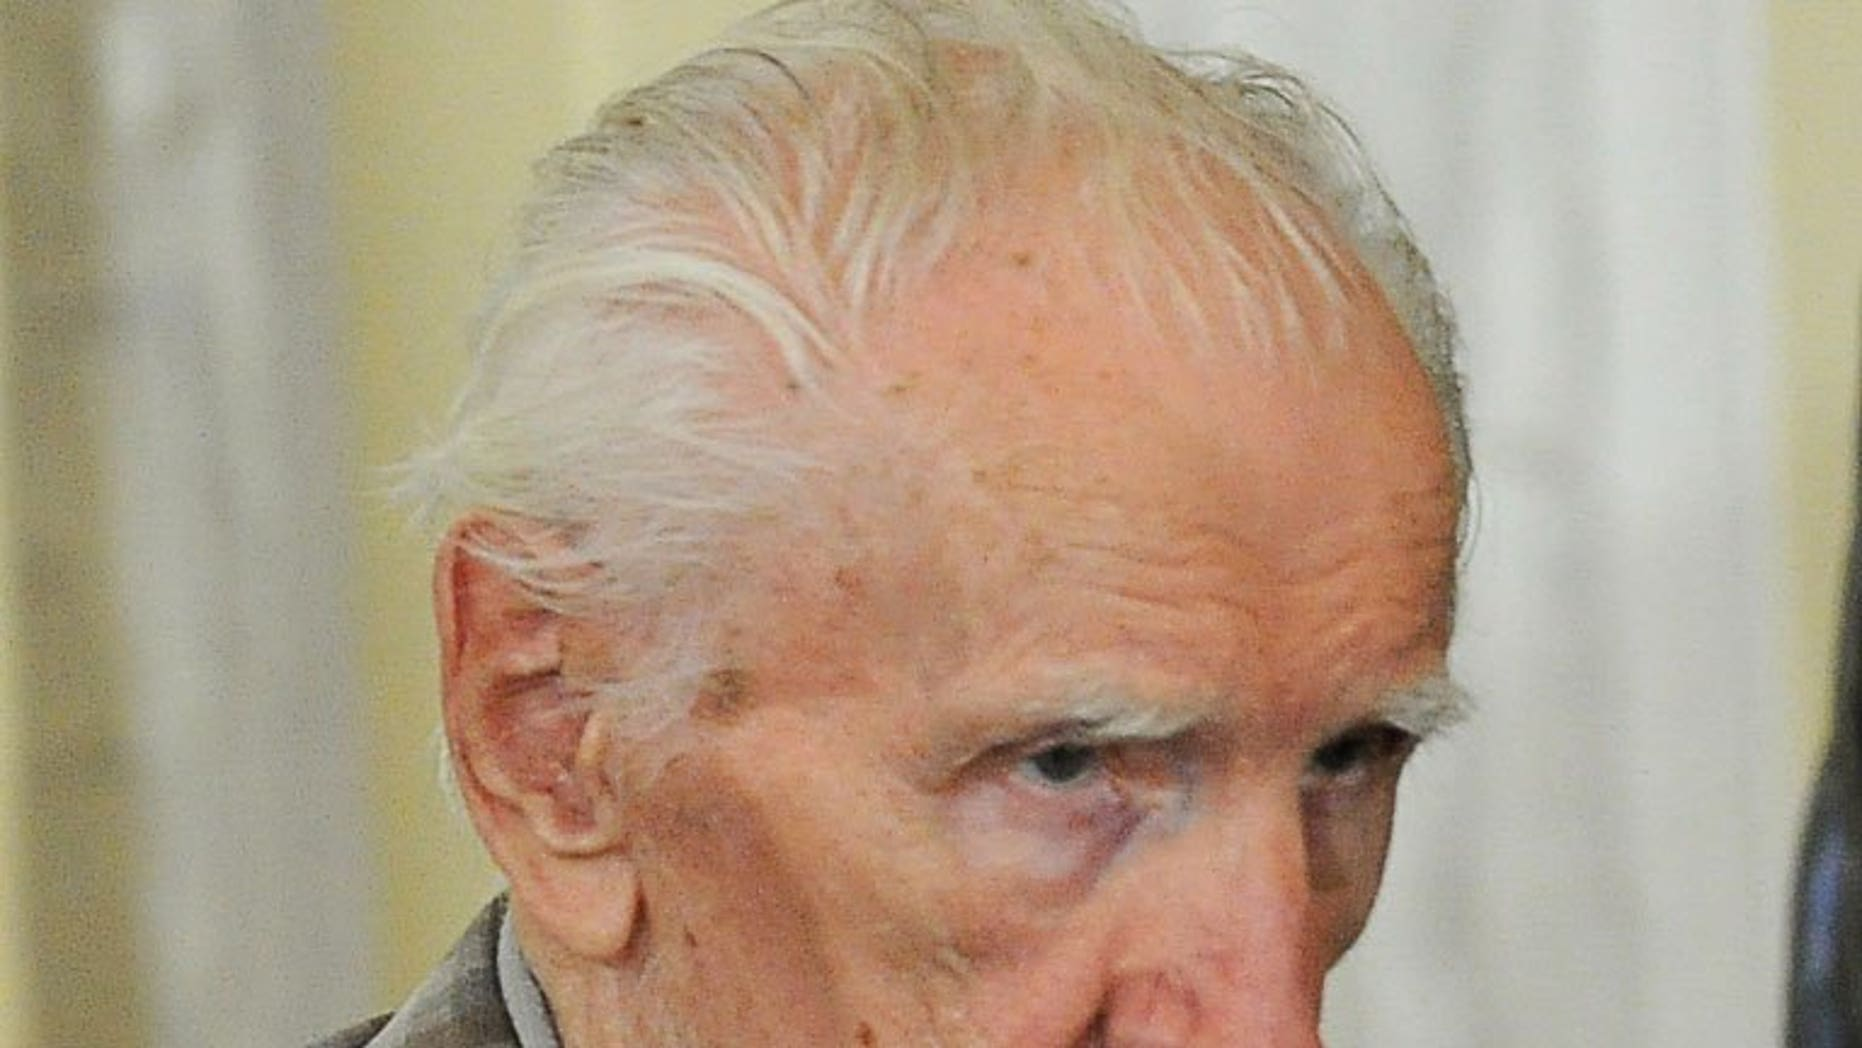 File picture shows top Nazi war crimes suspect Laszlo Csatari, aka Laszlo Csizsik-Csatari, leaving a courthouse in Budapest on July 18, 2012. Csatari, accused of overseeing thousands of Jewish deportations during World War II, was charged with war crimes on Tuesday in Hungary, prosecutors said.